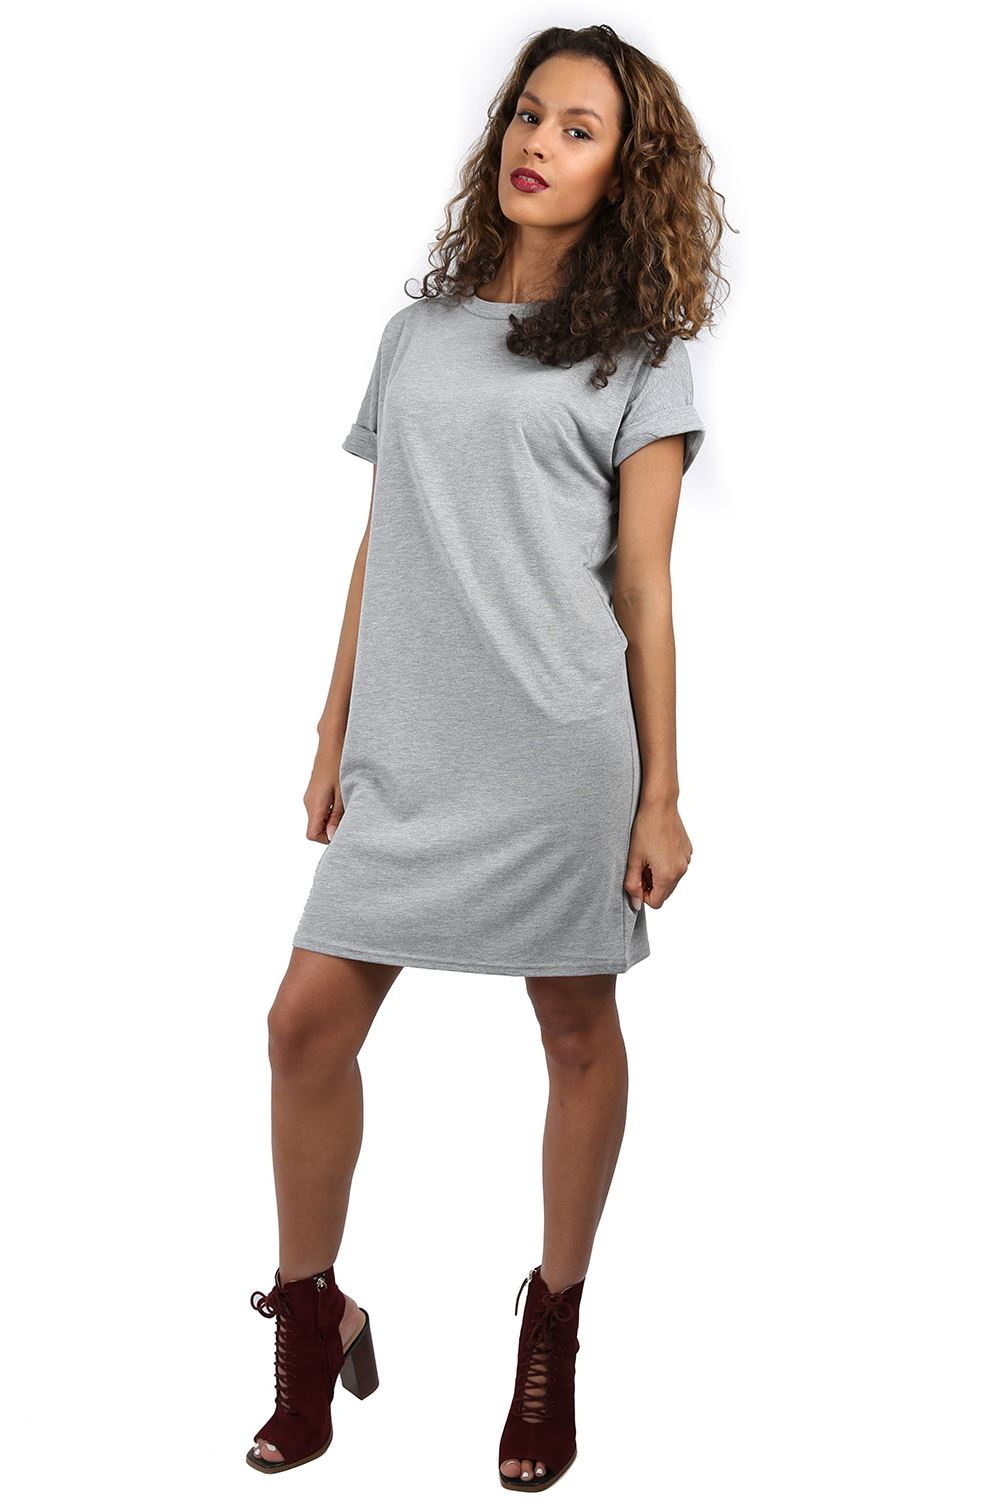 Free shipping on girls' clothes () at nakedprogrammzce.cf Shop dresses, tops, tees, sweatshirts, jeans and more. Totally free shipping and returns.